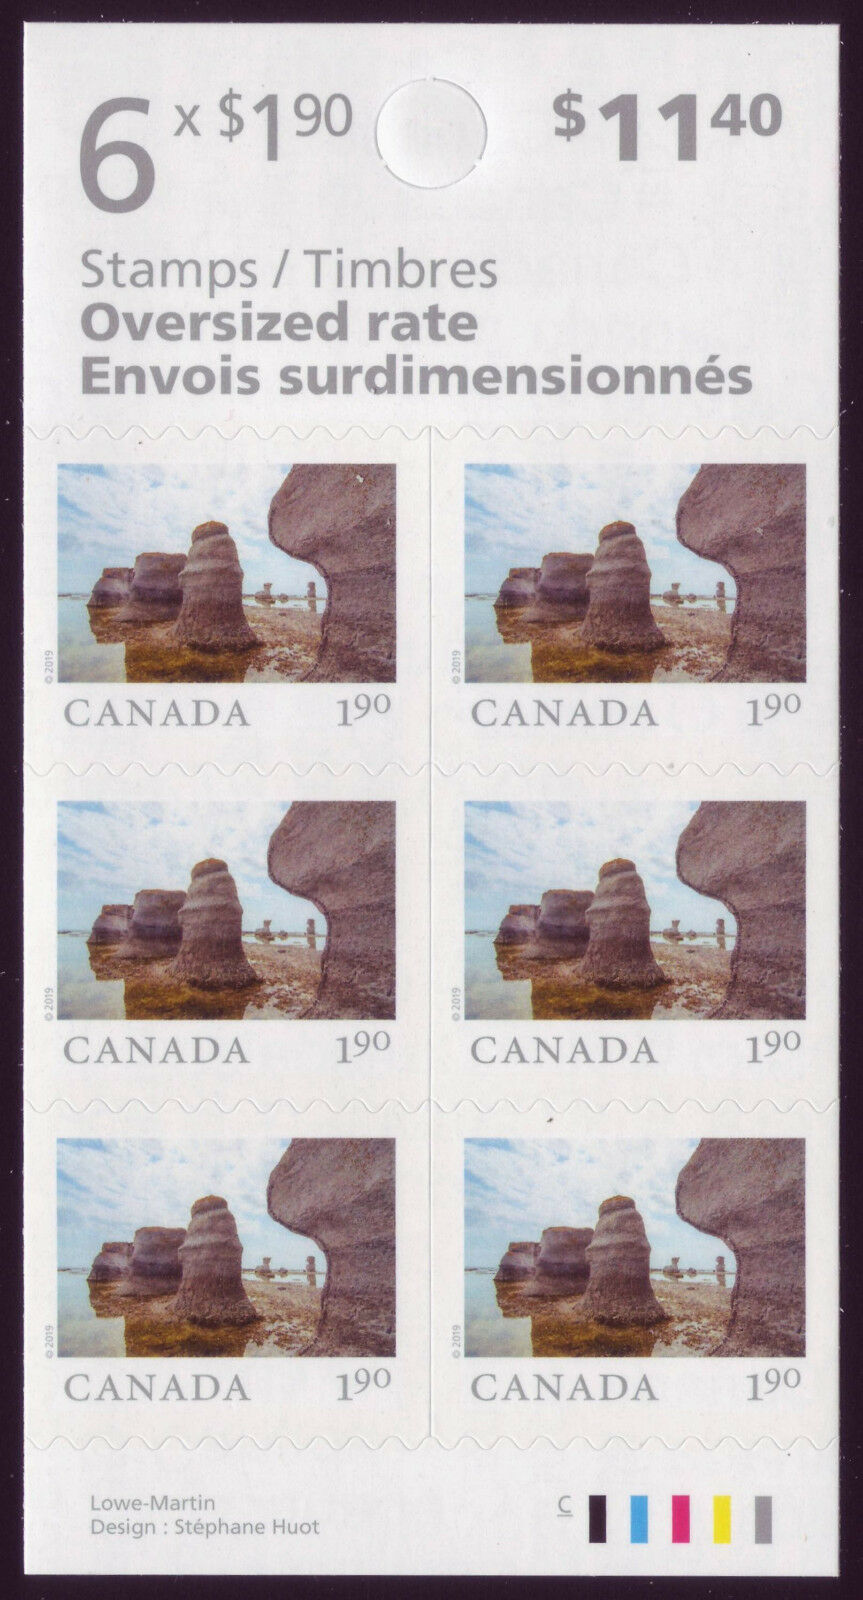 Canada - From Far and Wide (January 14, 2019) oversized rate booklet of 6